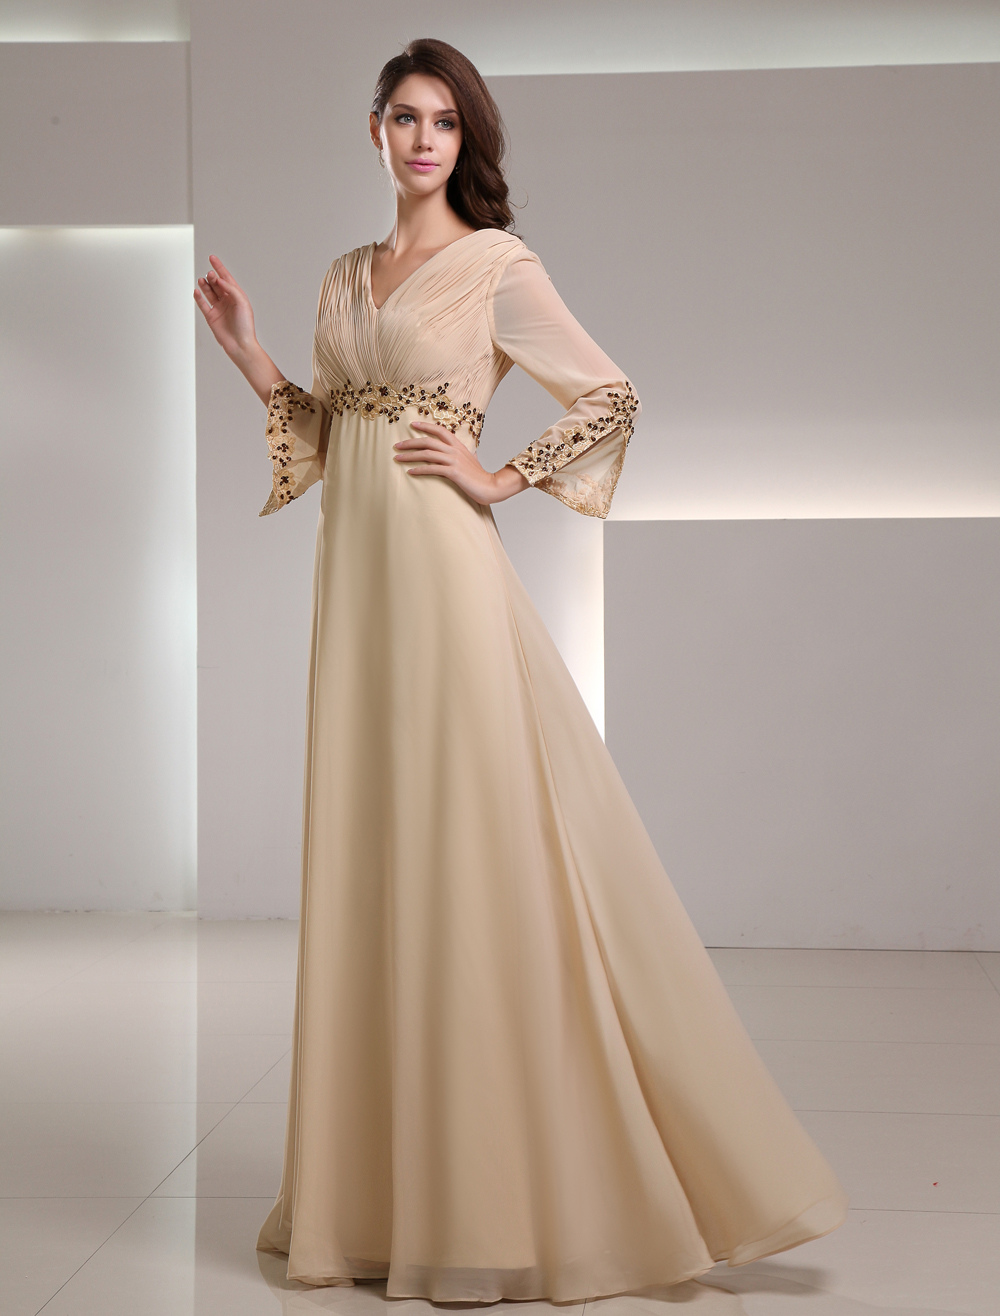 Gold Champagne Chiffon Applique V-Neck Women's Evening Dress